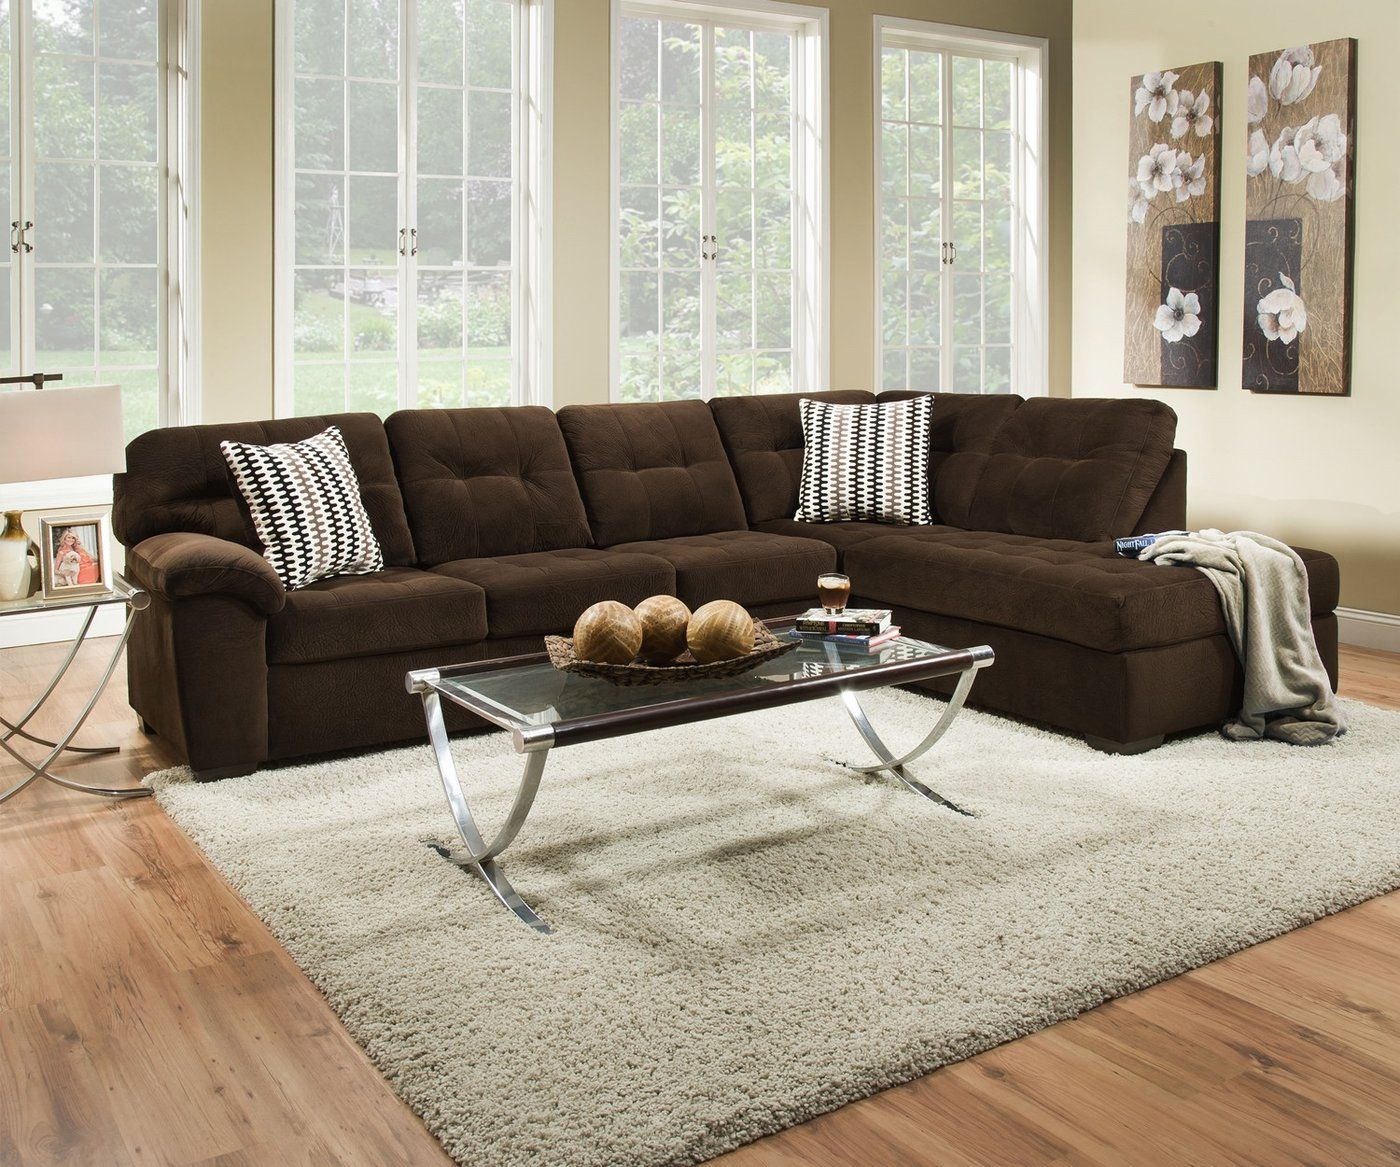 Universal Bernie Iva Sectional Las Vegas Furniture Online Lasvegasfurnitureonline